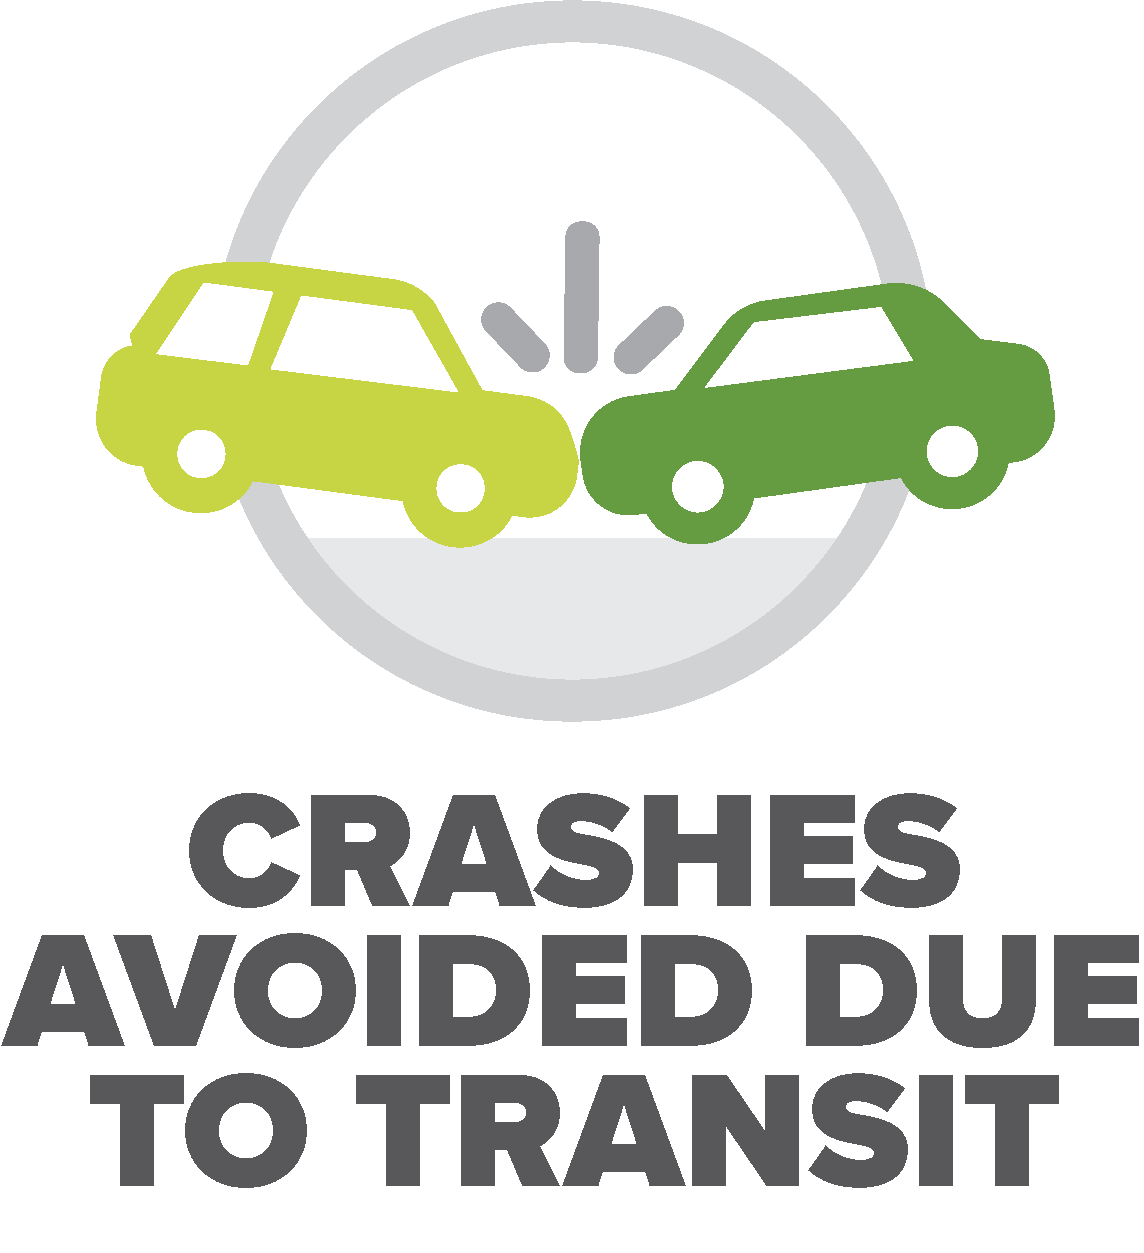 crashes avoided due to transit